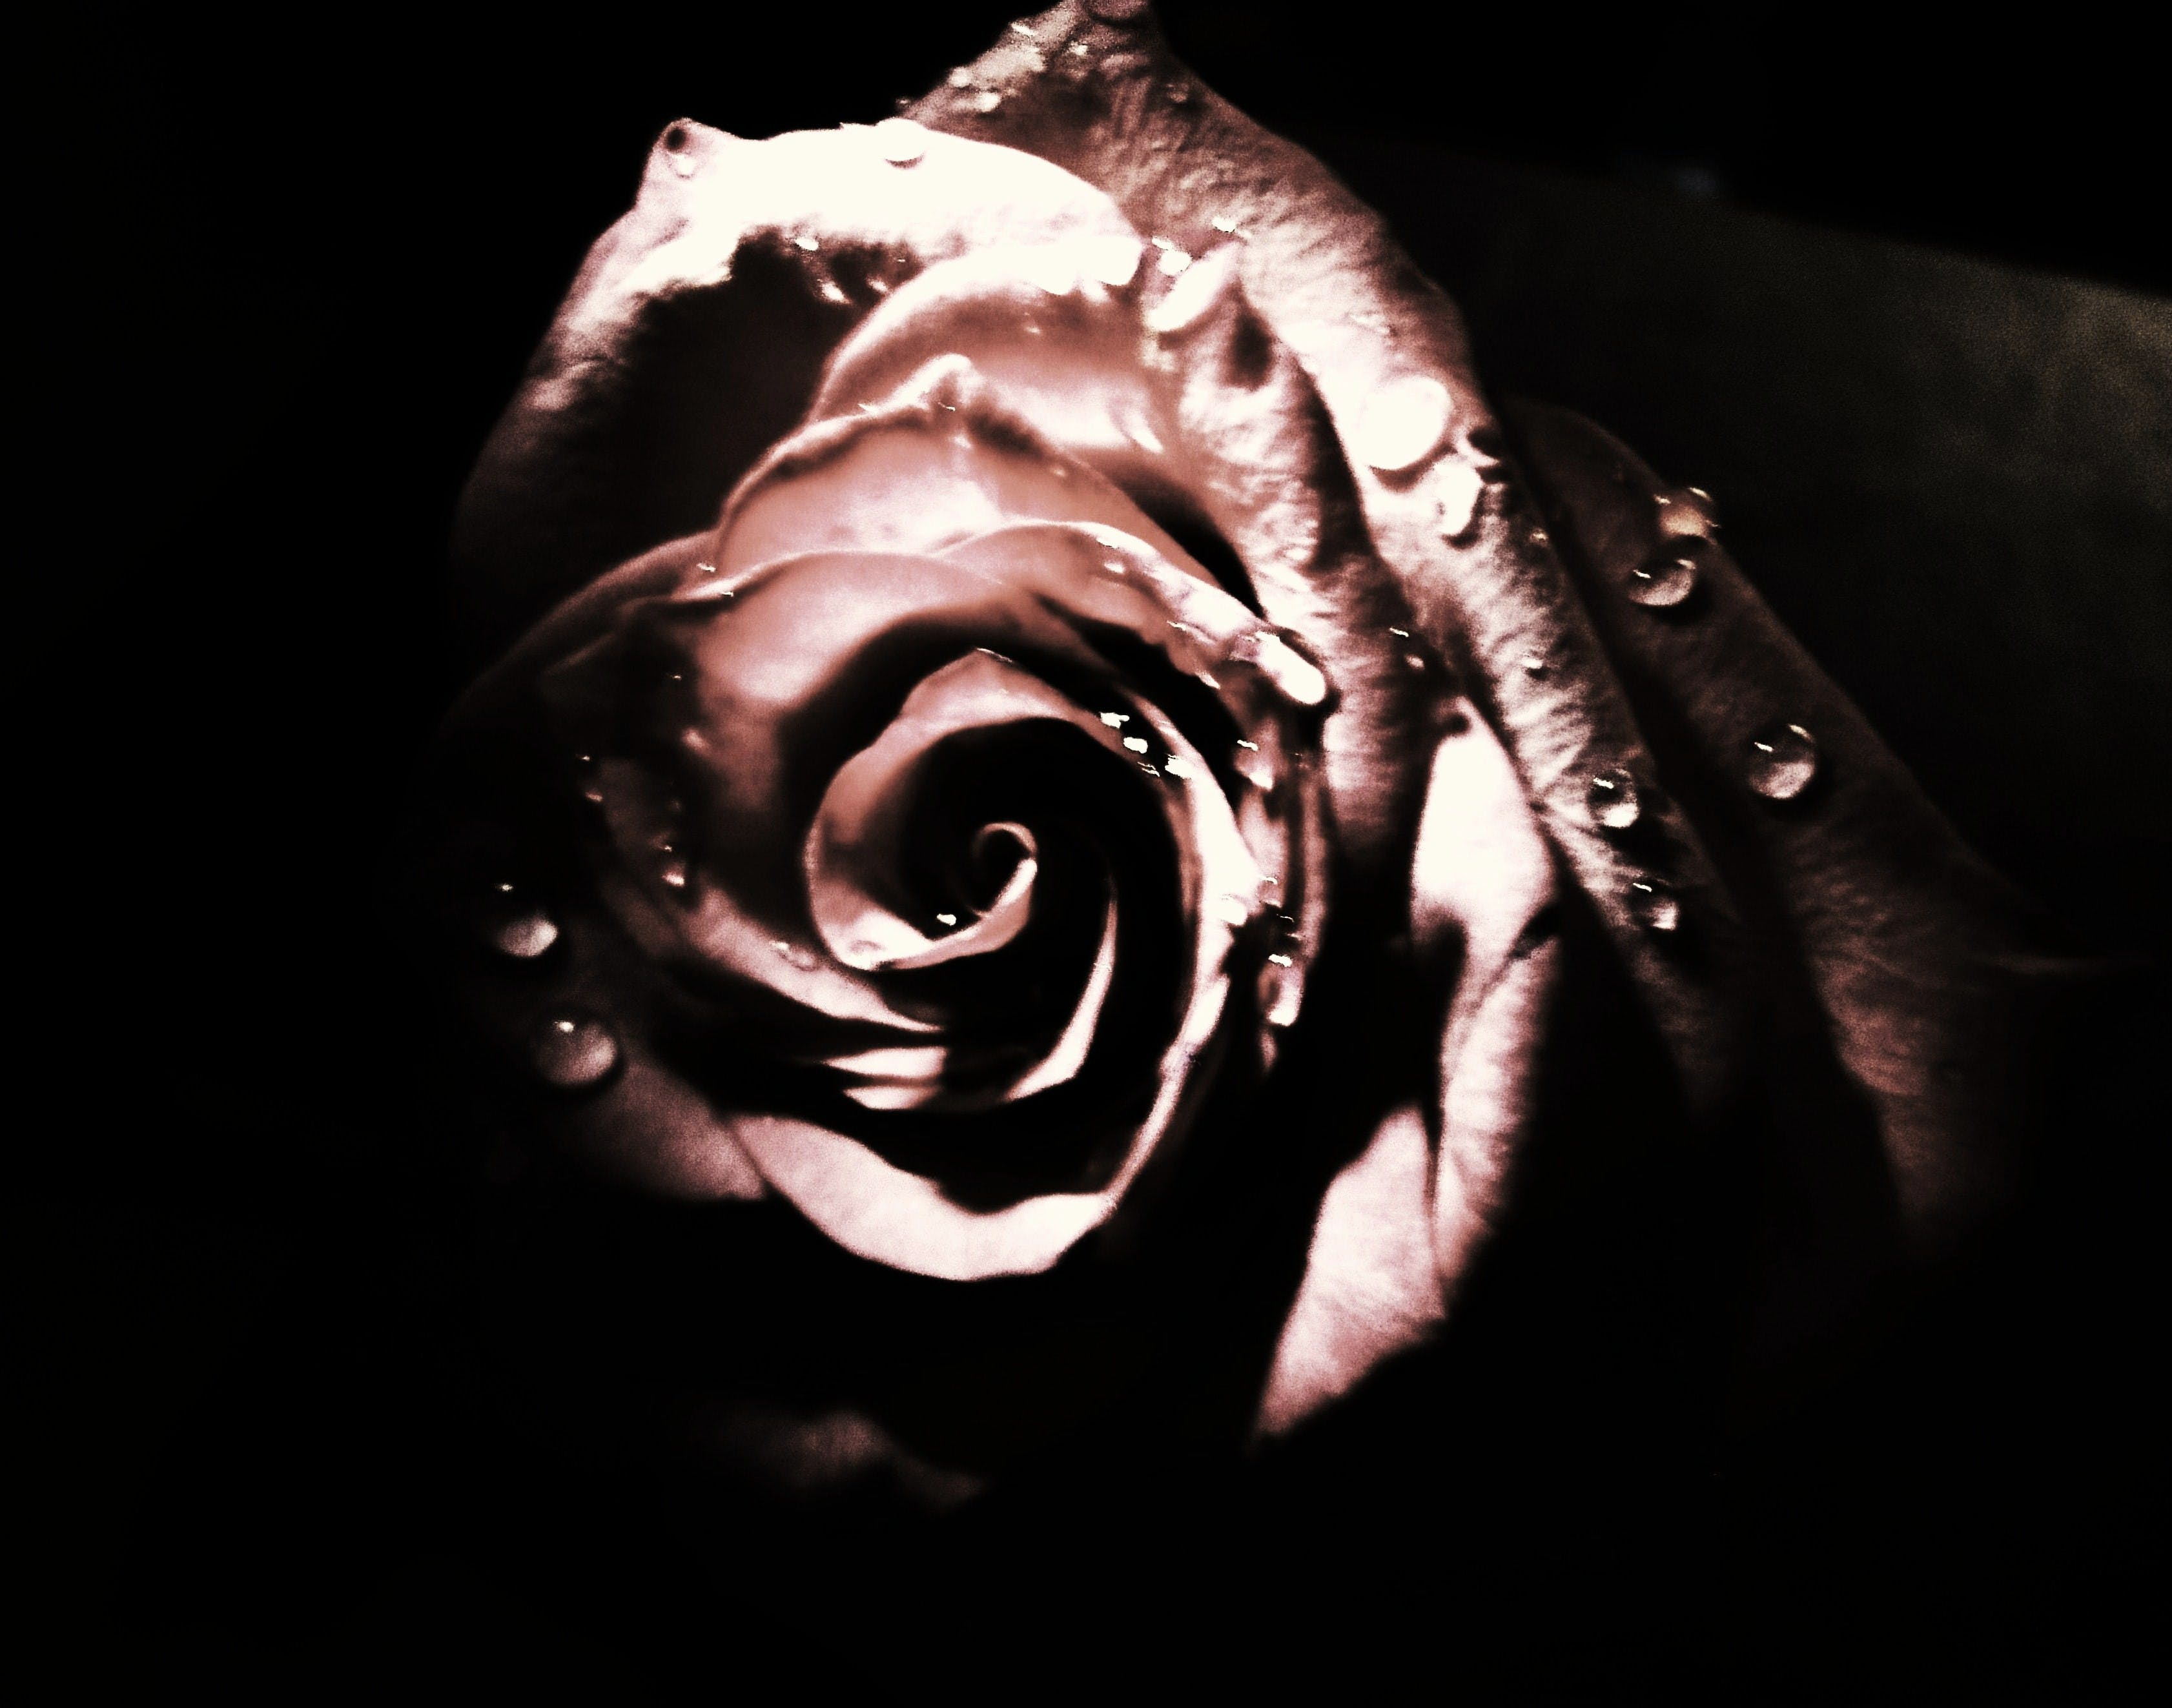 Free stock photo of petals, rose, tears